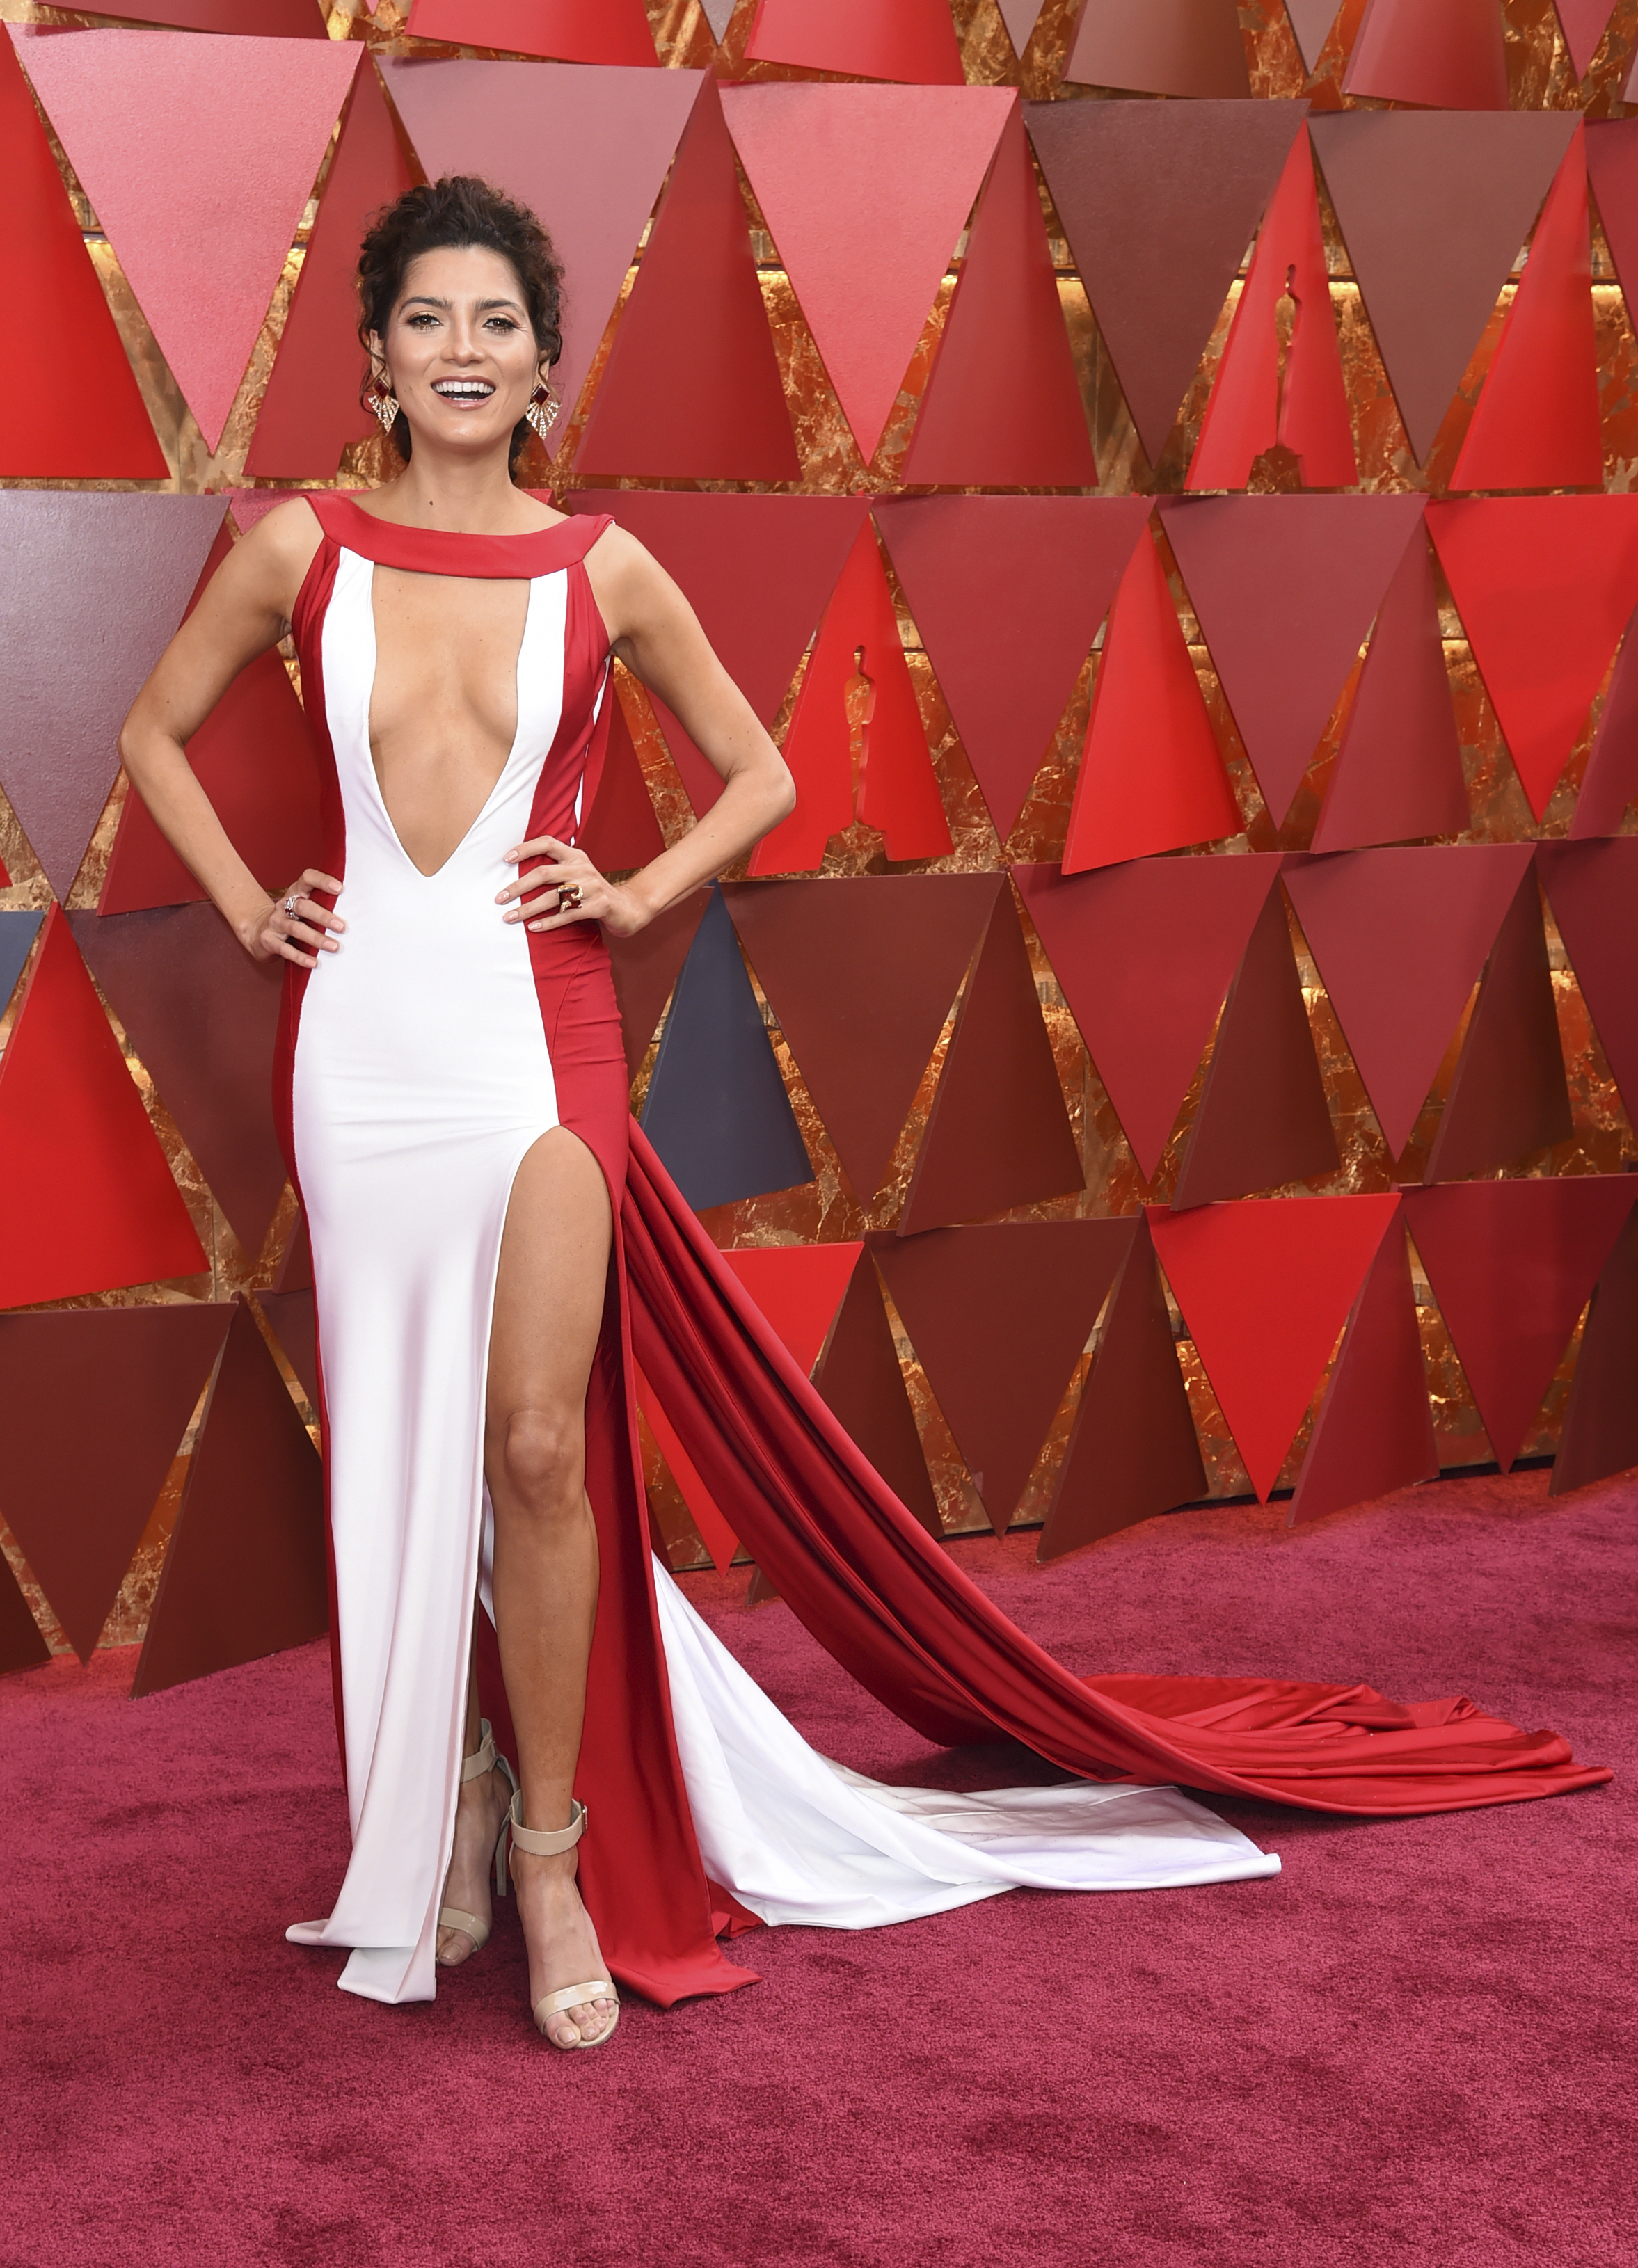 "<div class=""meta image-caption""><div class=""origin-logo origin-image none""><span>none</span></div><span class=""caption-text"">Blanca Blanco arrives at the Oscars on Sunday, March 4, 2018, at the Dolby Theatre in Los Angeles. (Richard Shotwell/Invision/AP)</span></div>"